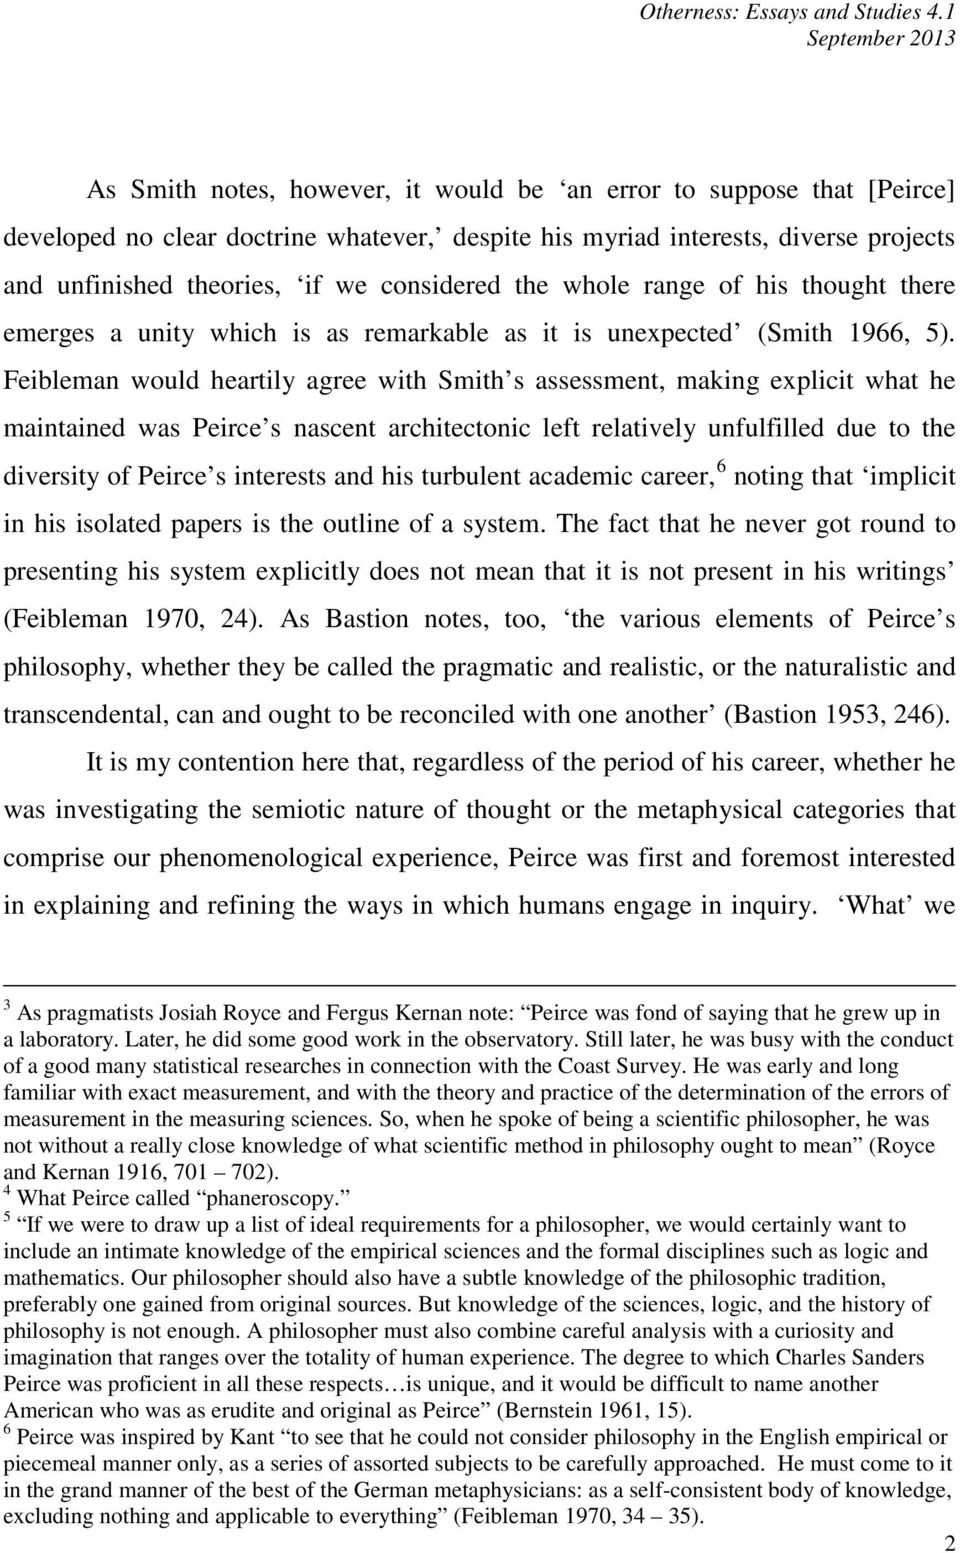 Feibleman would heartily agree with Smith s assessment, making explicit what he maintained was Peirce s nascent architectonic left relatively unfulfilled due to the diversity of Peirce s interests